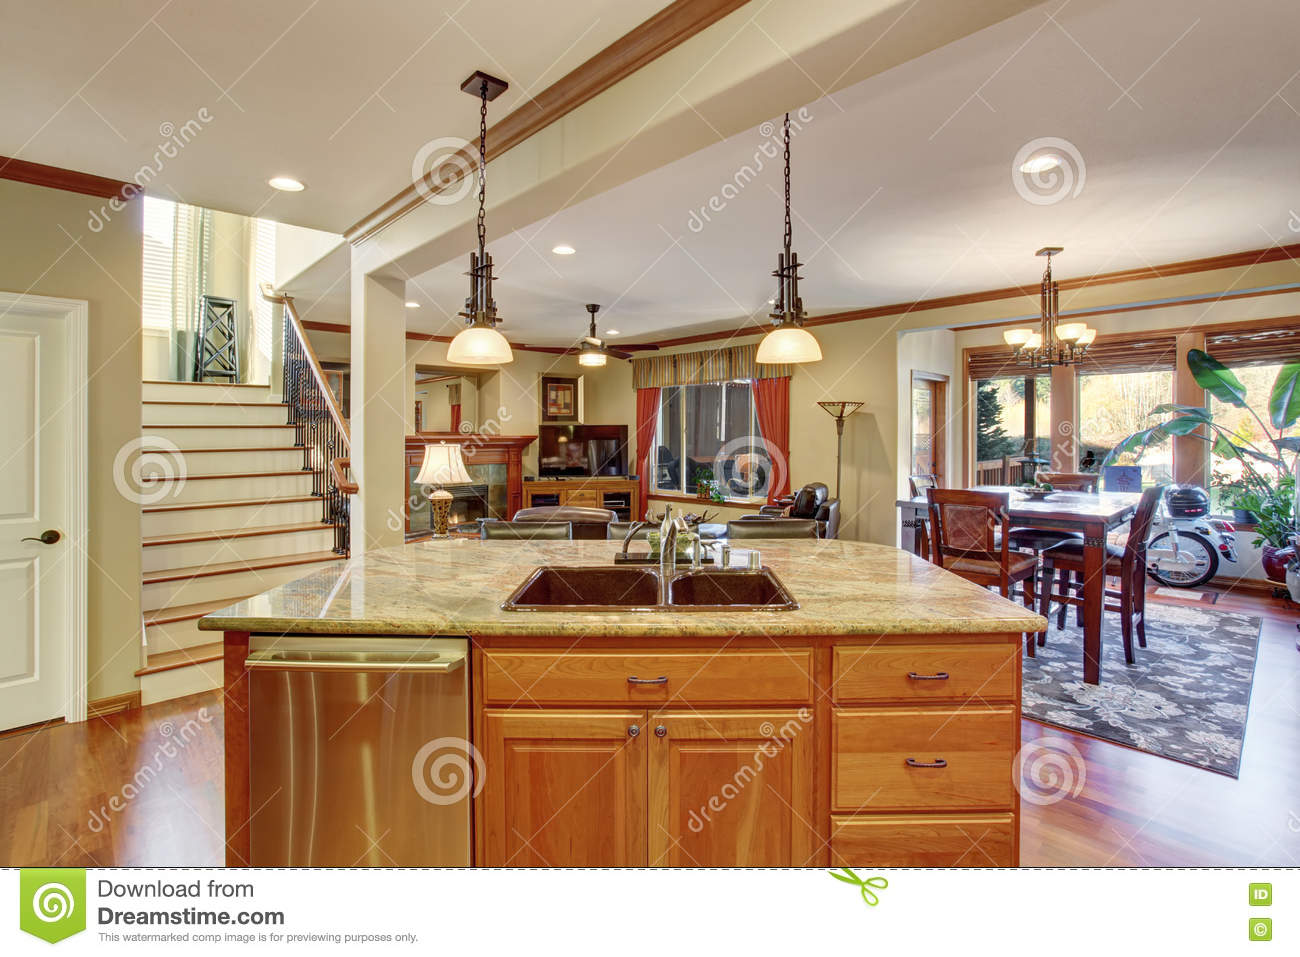 Open floor plan view of kitchen island with sink stock for Open kitchen floor plans with islands